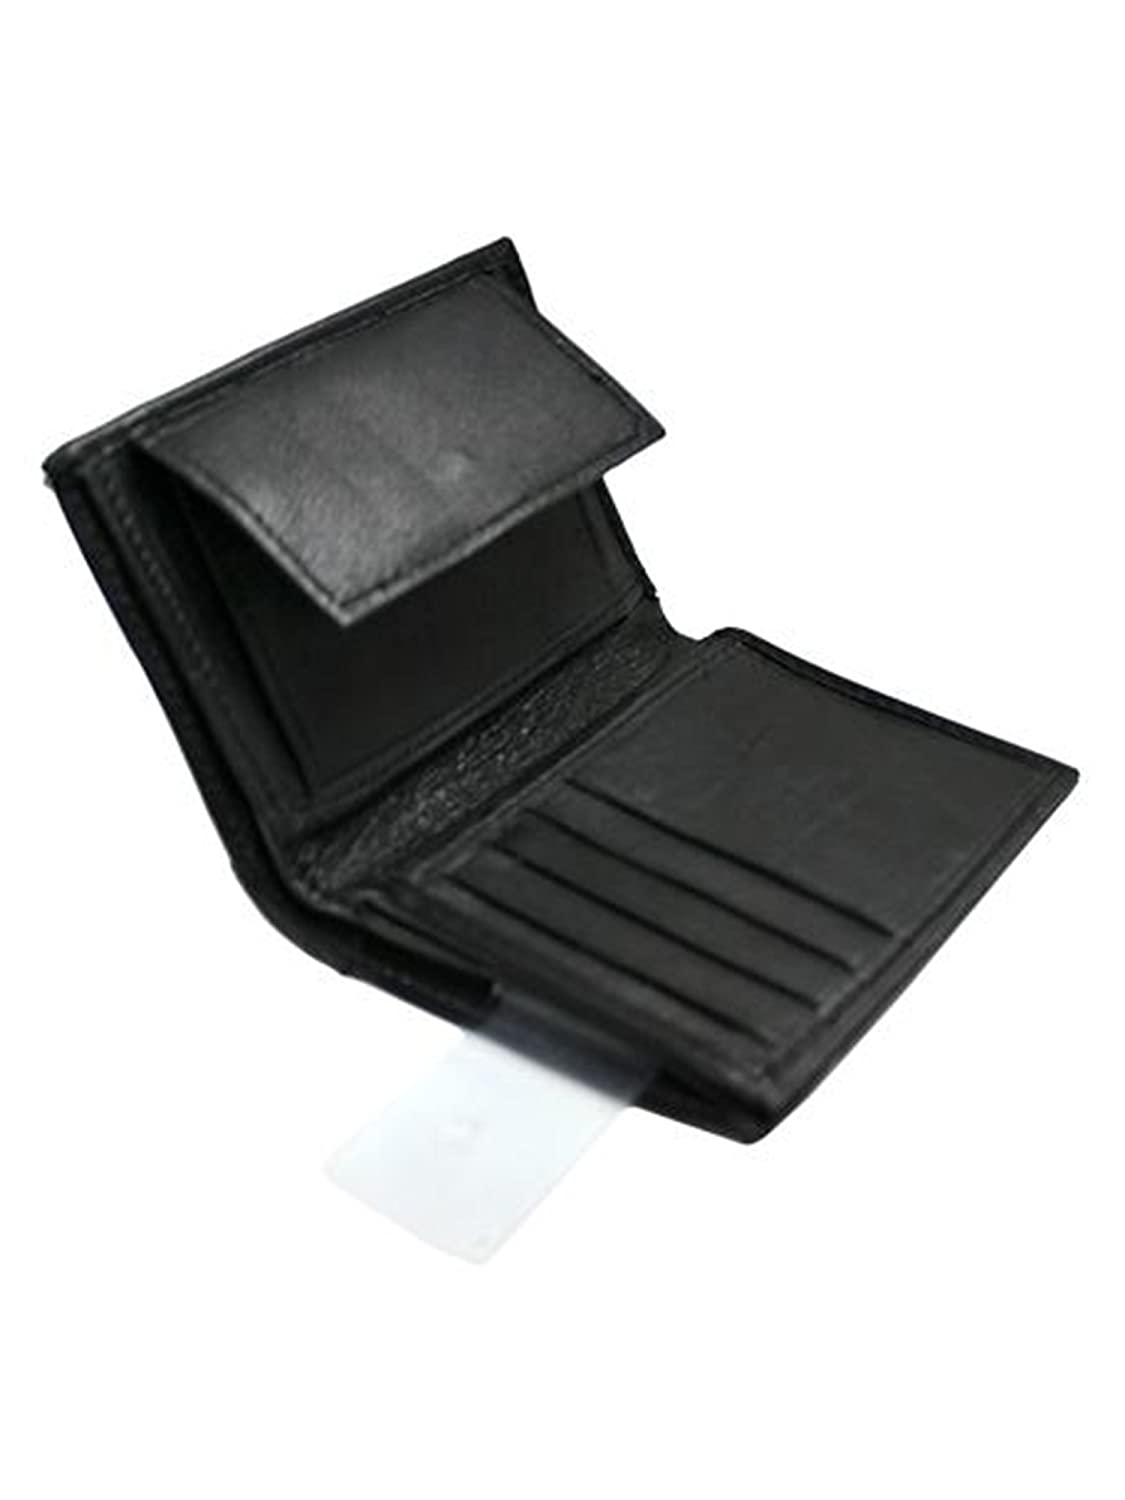 Amazon.com: Slim Bifold Mens Negro cartera con moneda ...